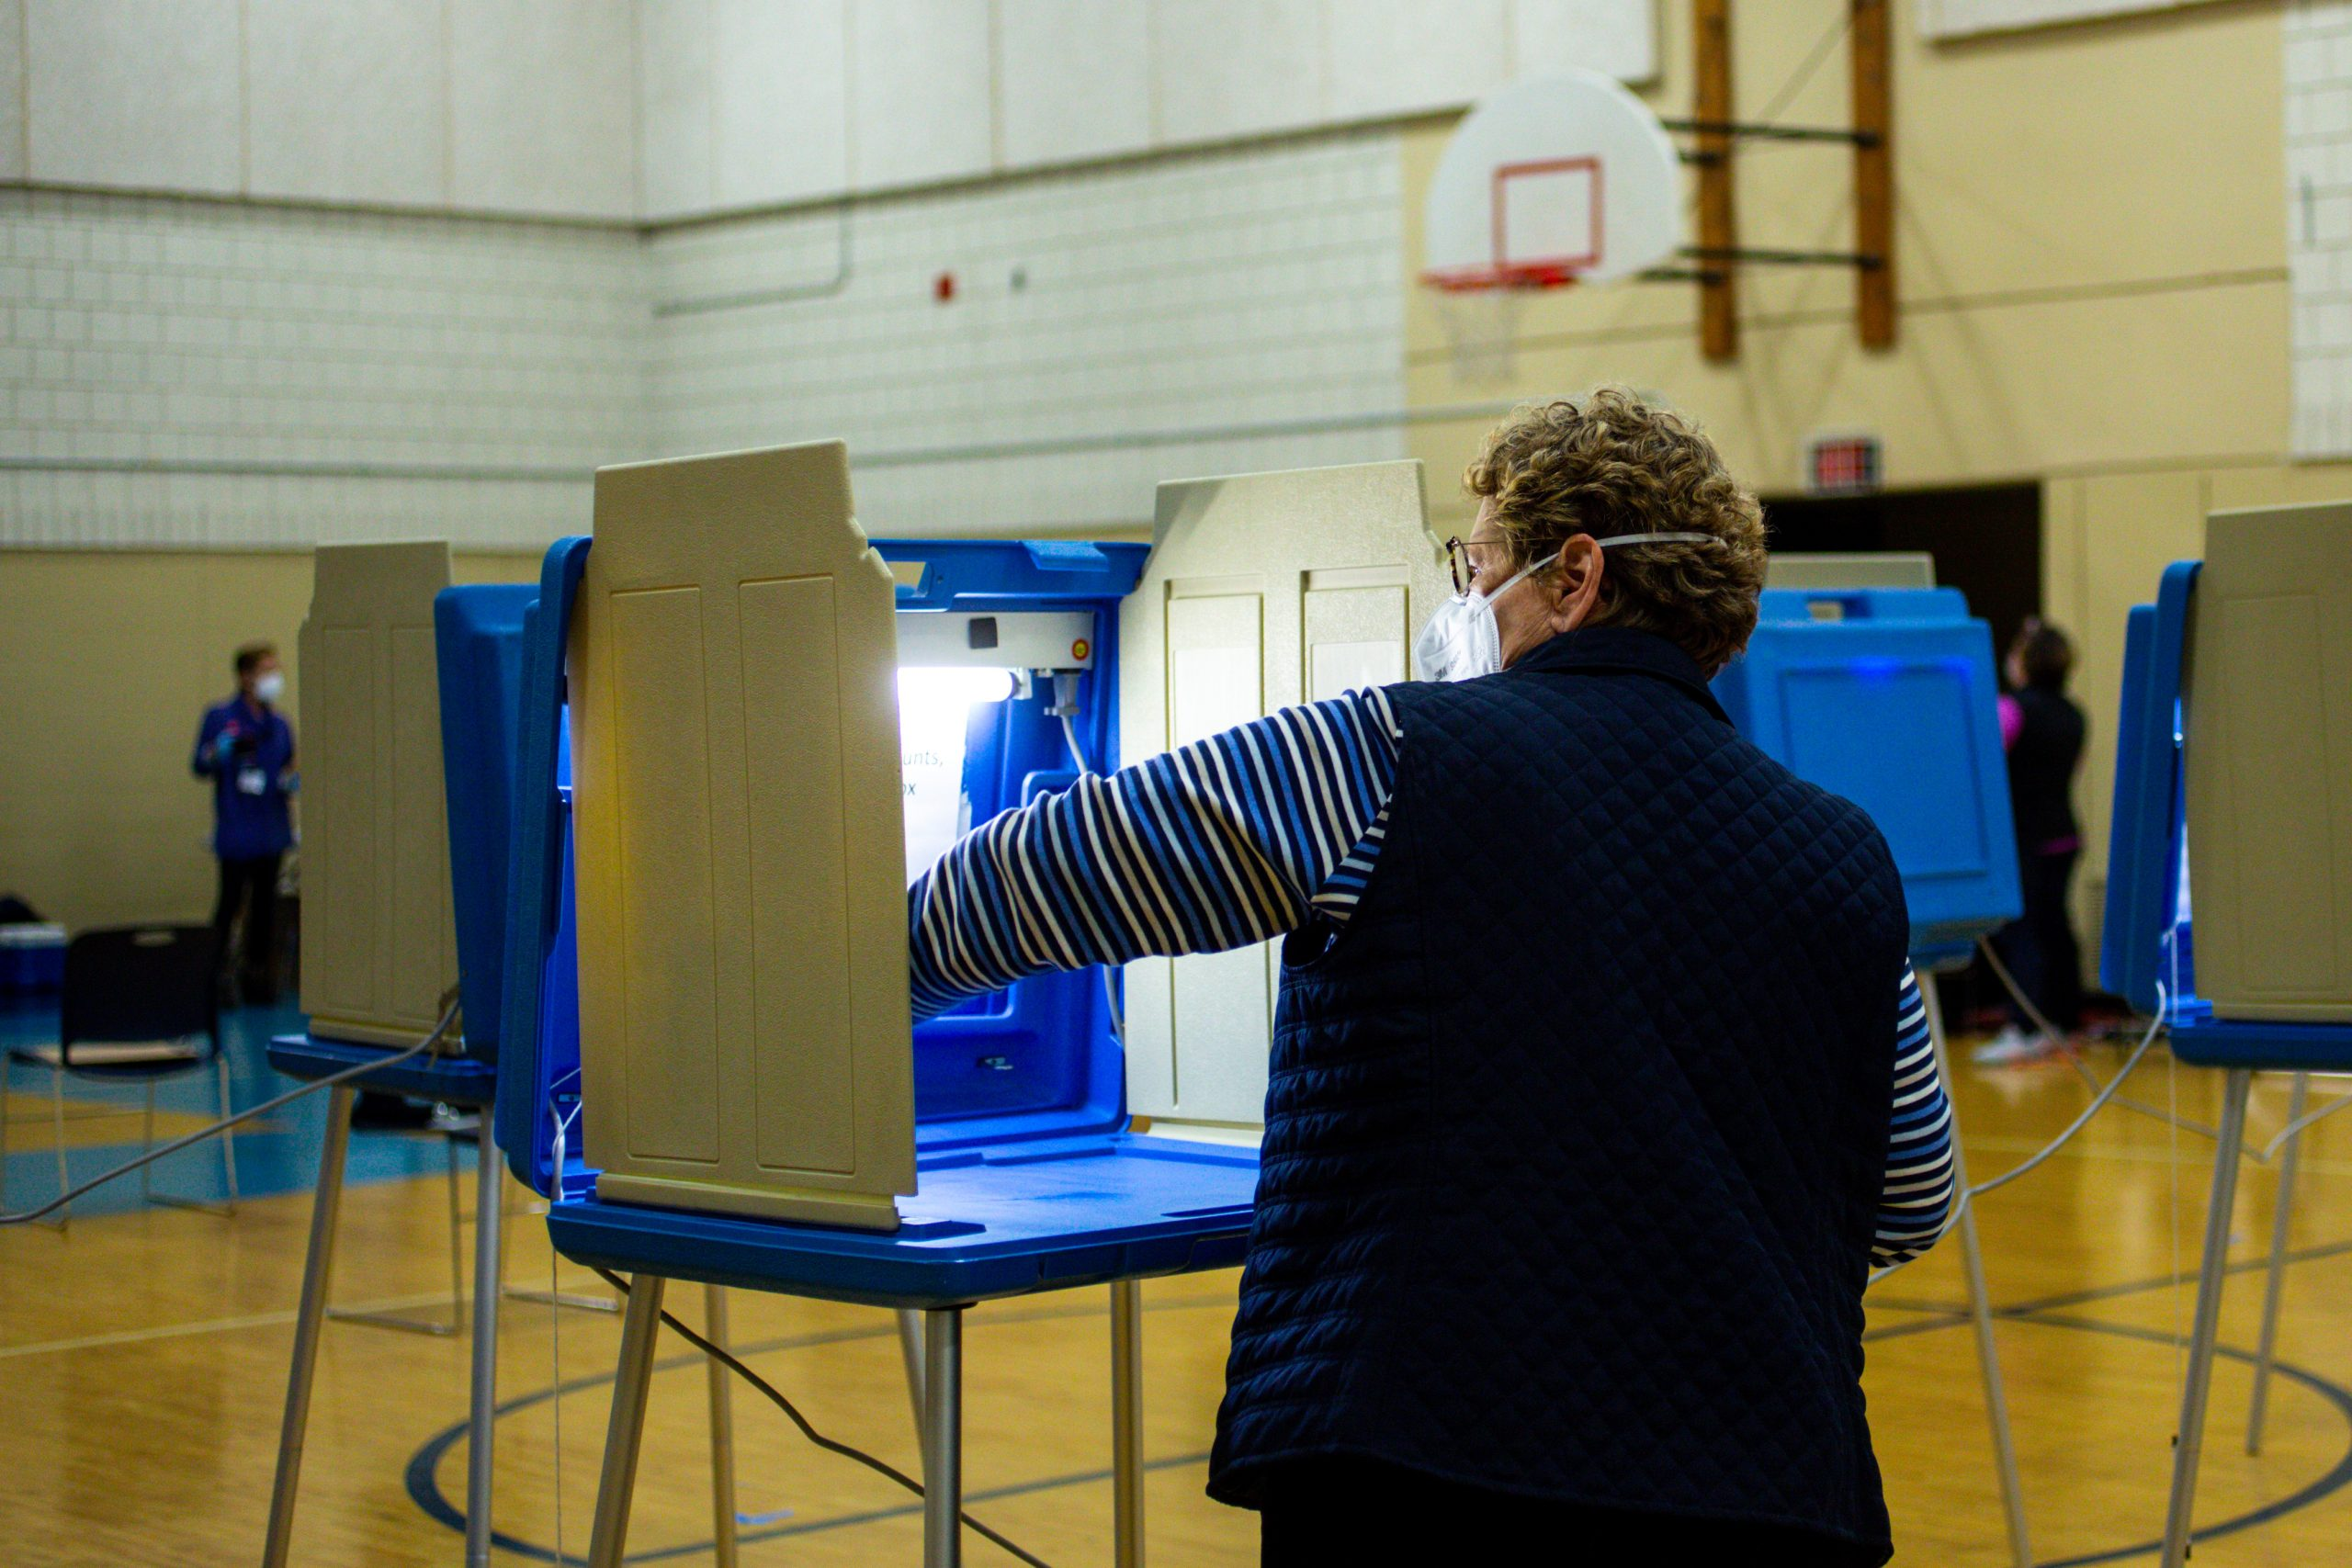 Facing foreign election foes, states hire 'cyber navigators'